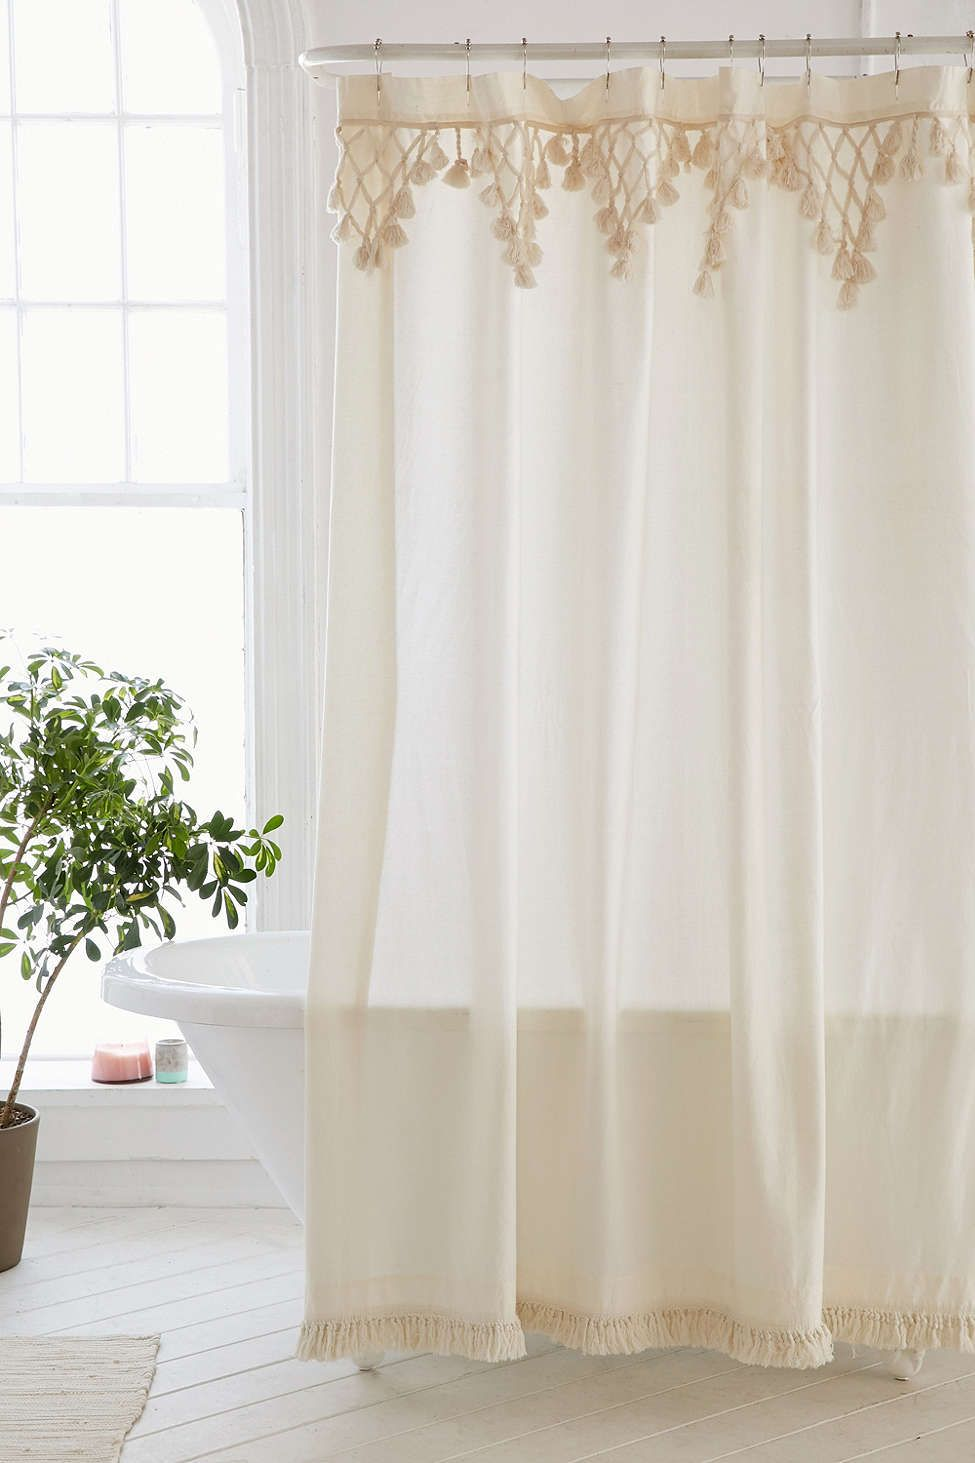 Topanga Fringe Shower Curtain Urban Outfitters Curtains Shabby